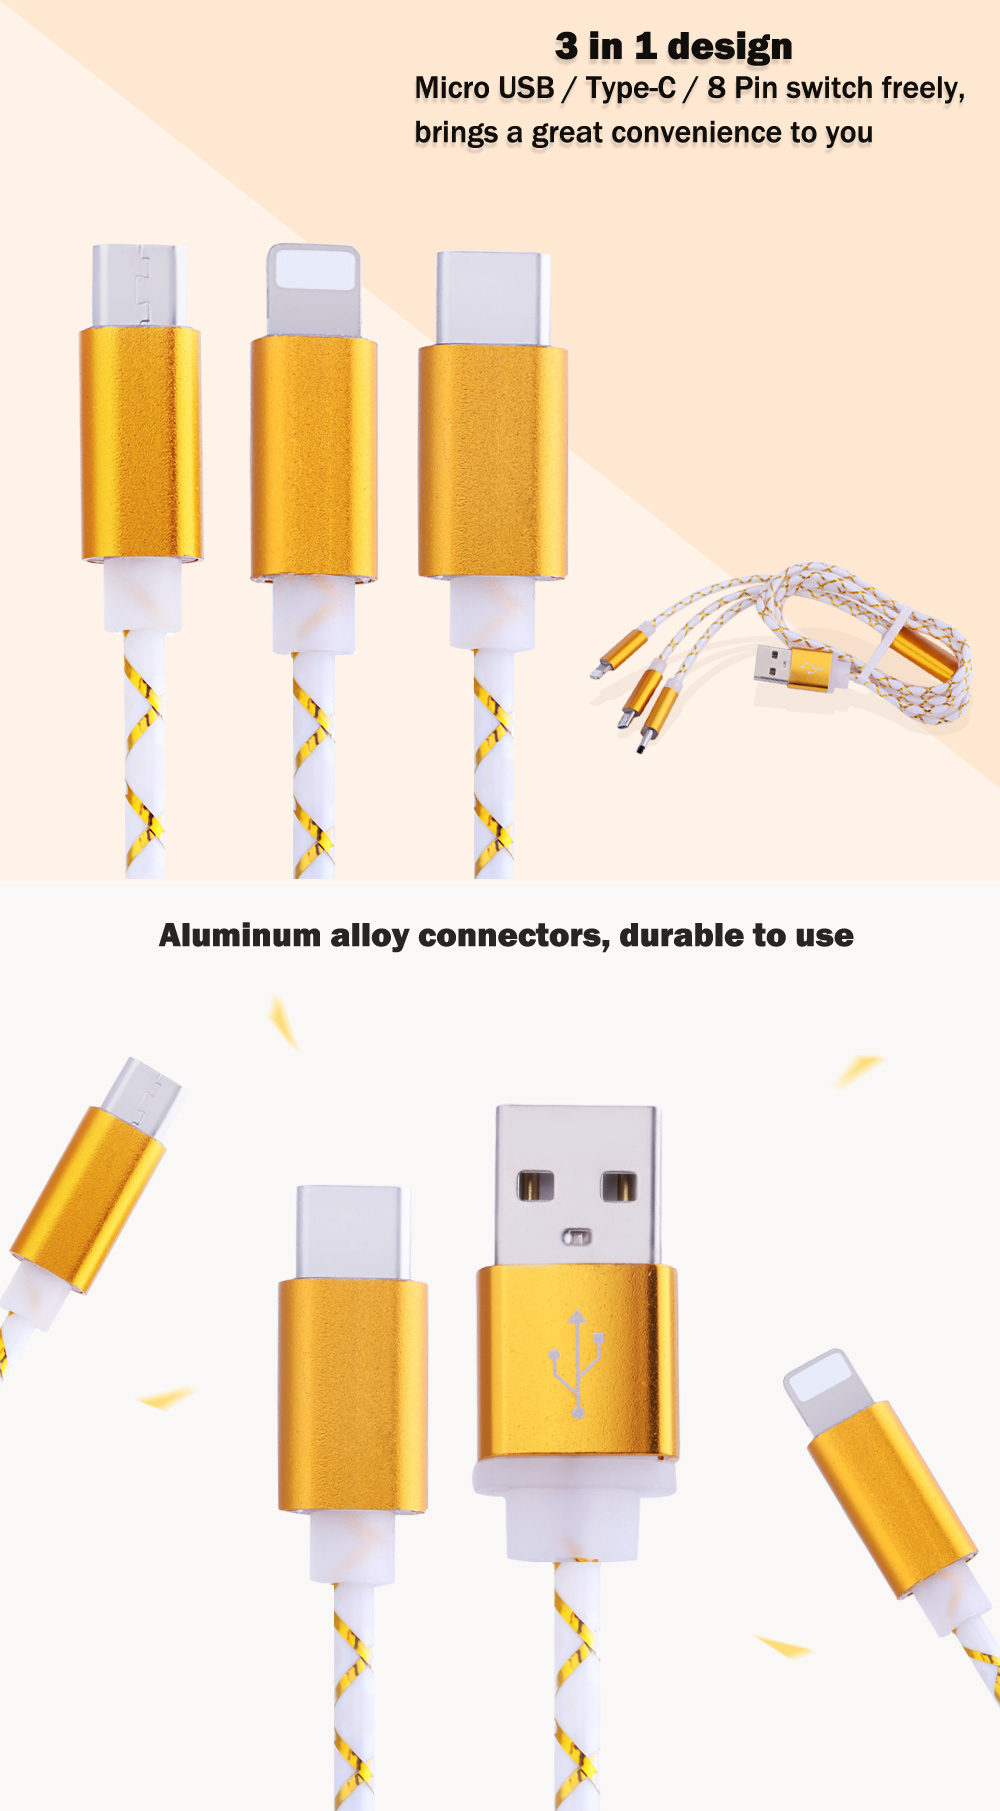 3 in 1 Micro USB + Type-C + 8 Pin Aluminum Alloy Connector Charge Cable 1m